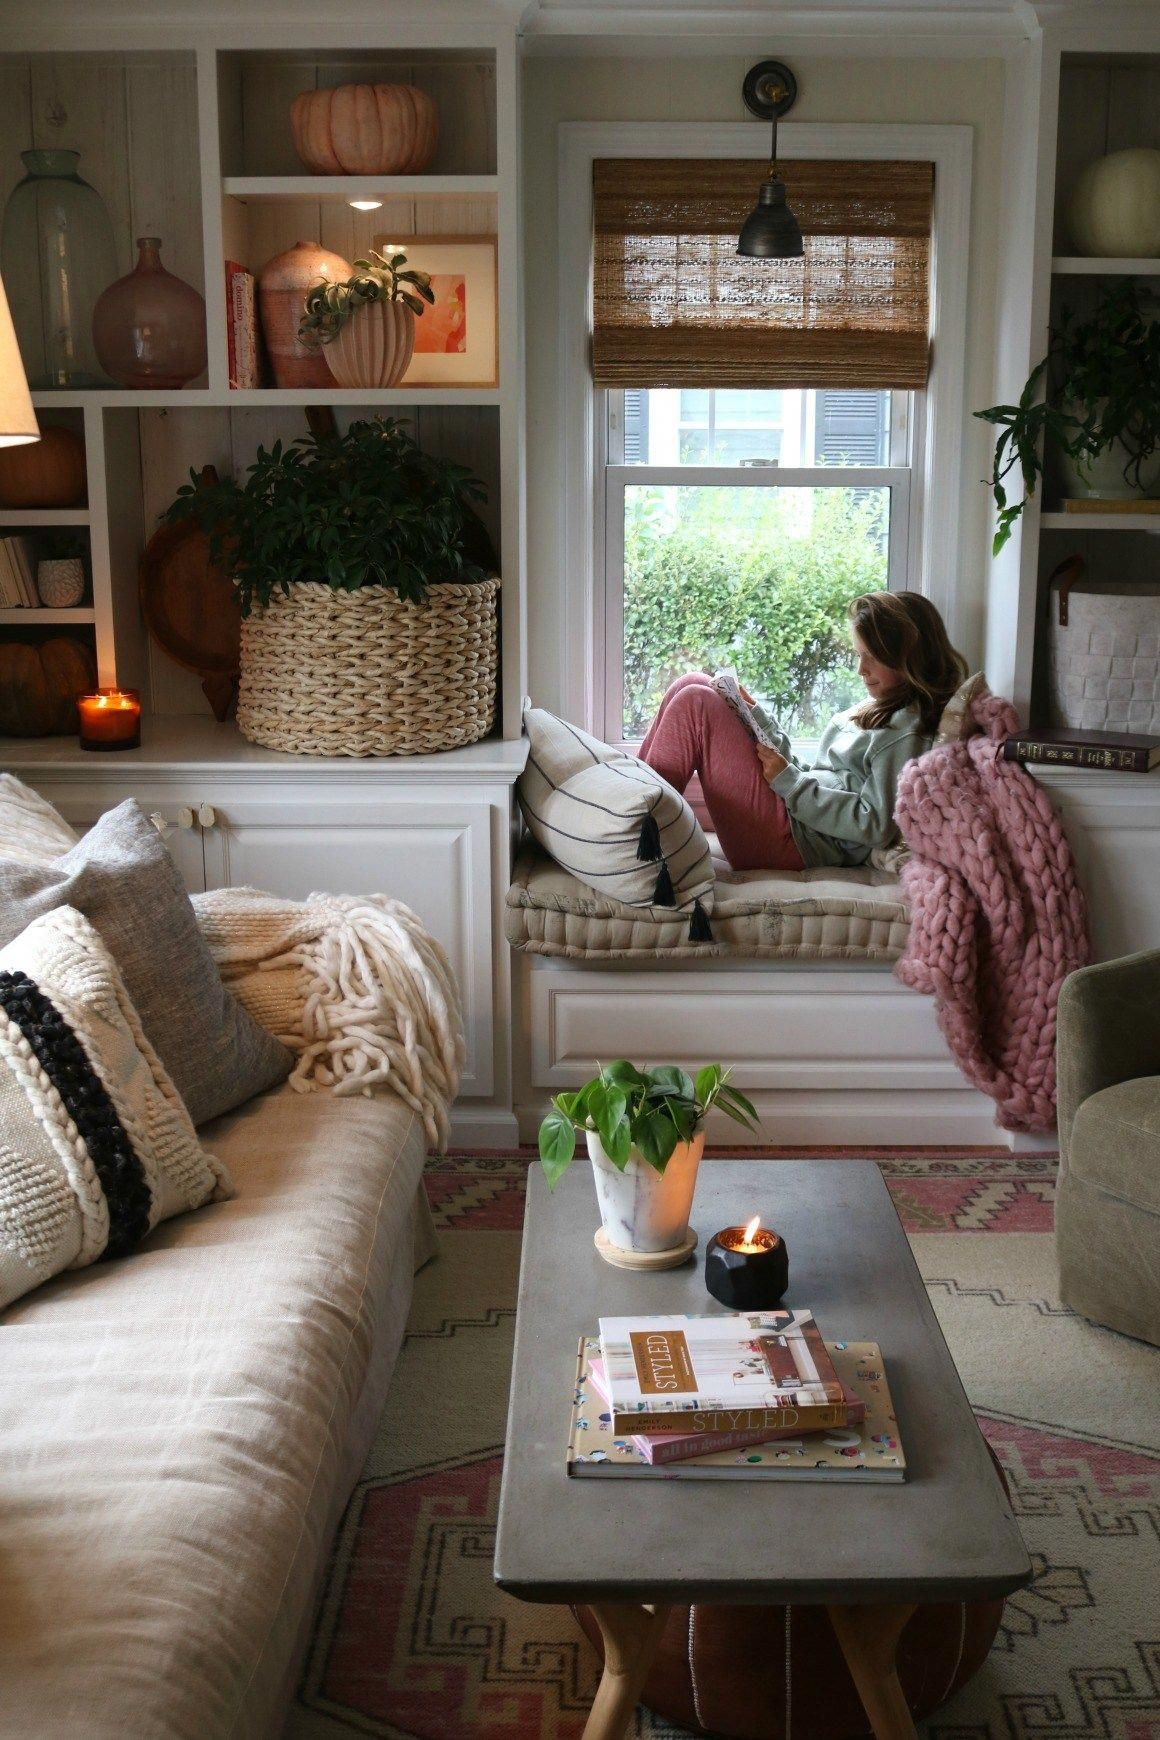 Easy Fall Decorating Ideas In The Living Room Especially Tips For Styling Your Shelves With House Plants Candles Easy Home Decor Room Decor Cheap Home Decor